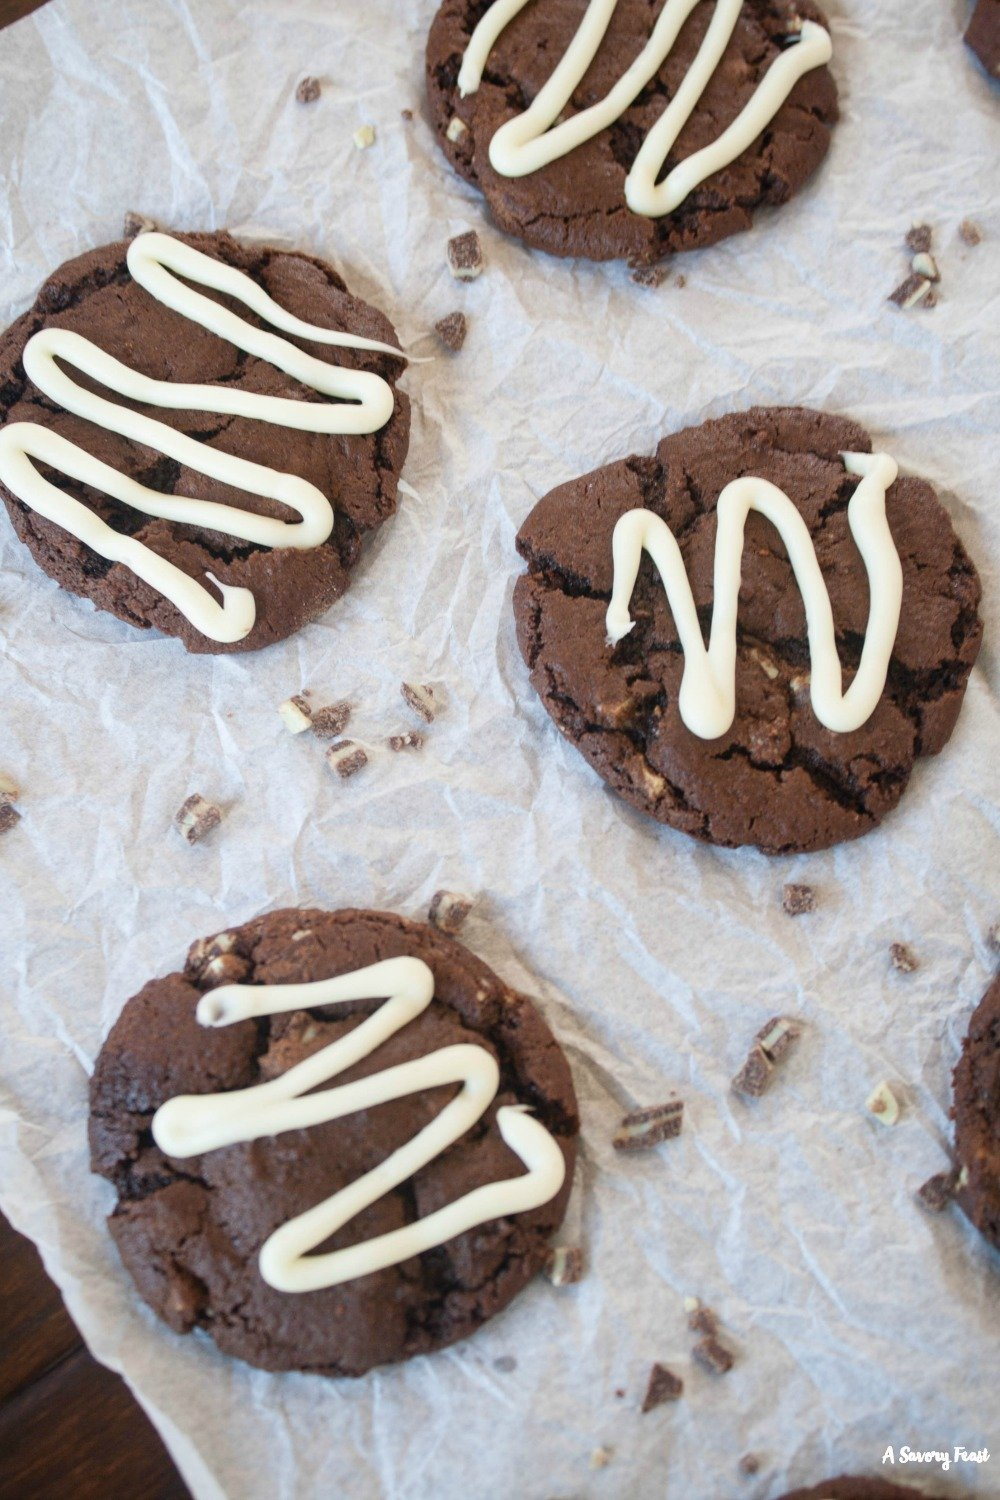 Chocolate and mint are the perfect pair in this cookie recipe! Try these Andes Mint Chocolate Cookies this holiday season.